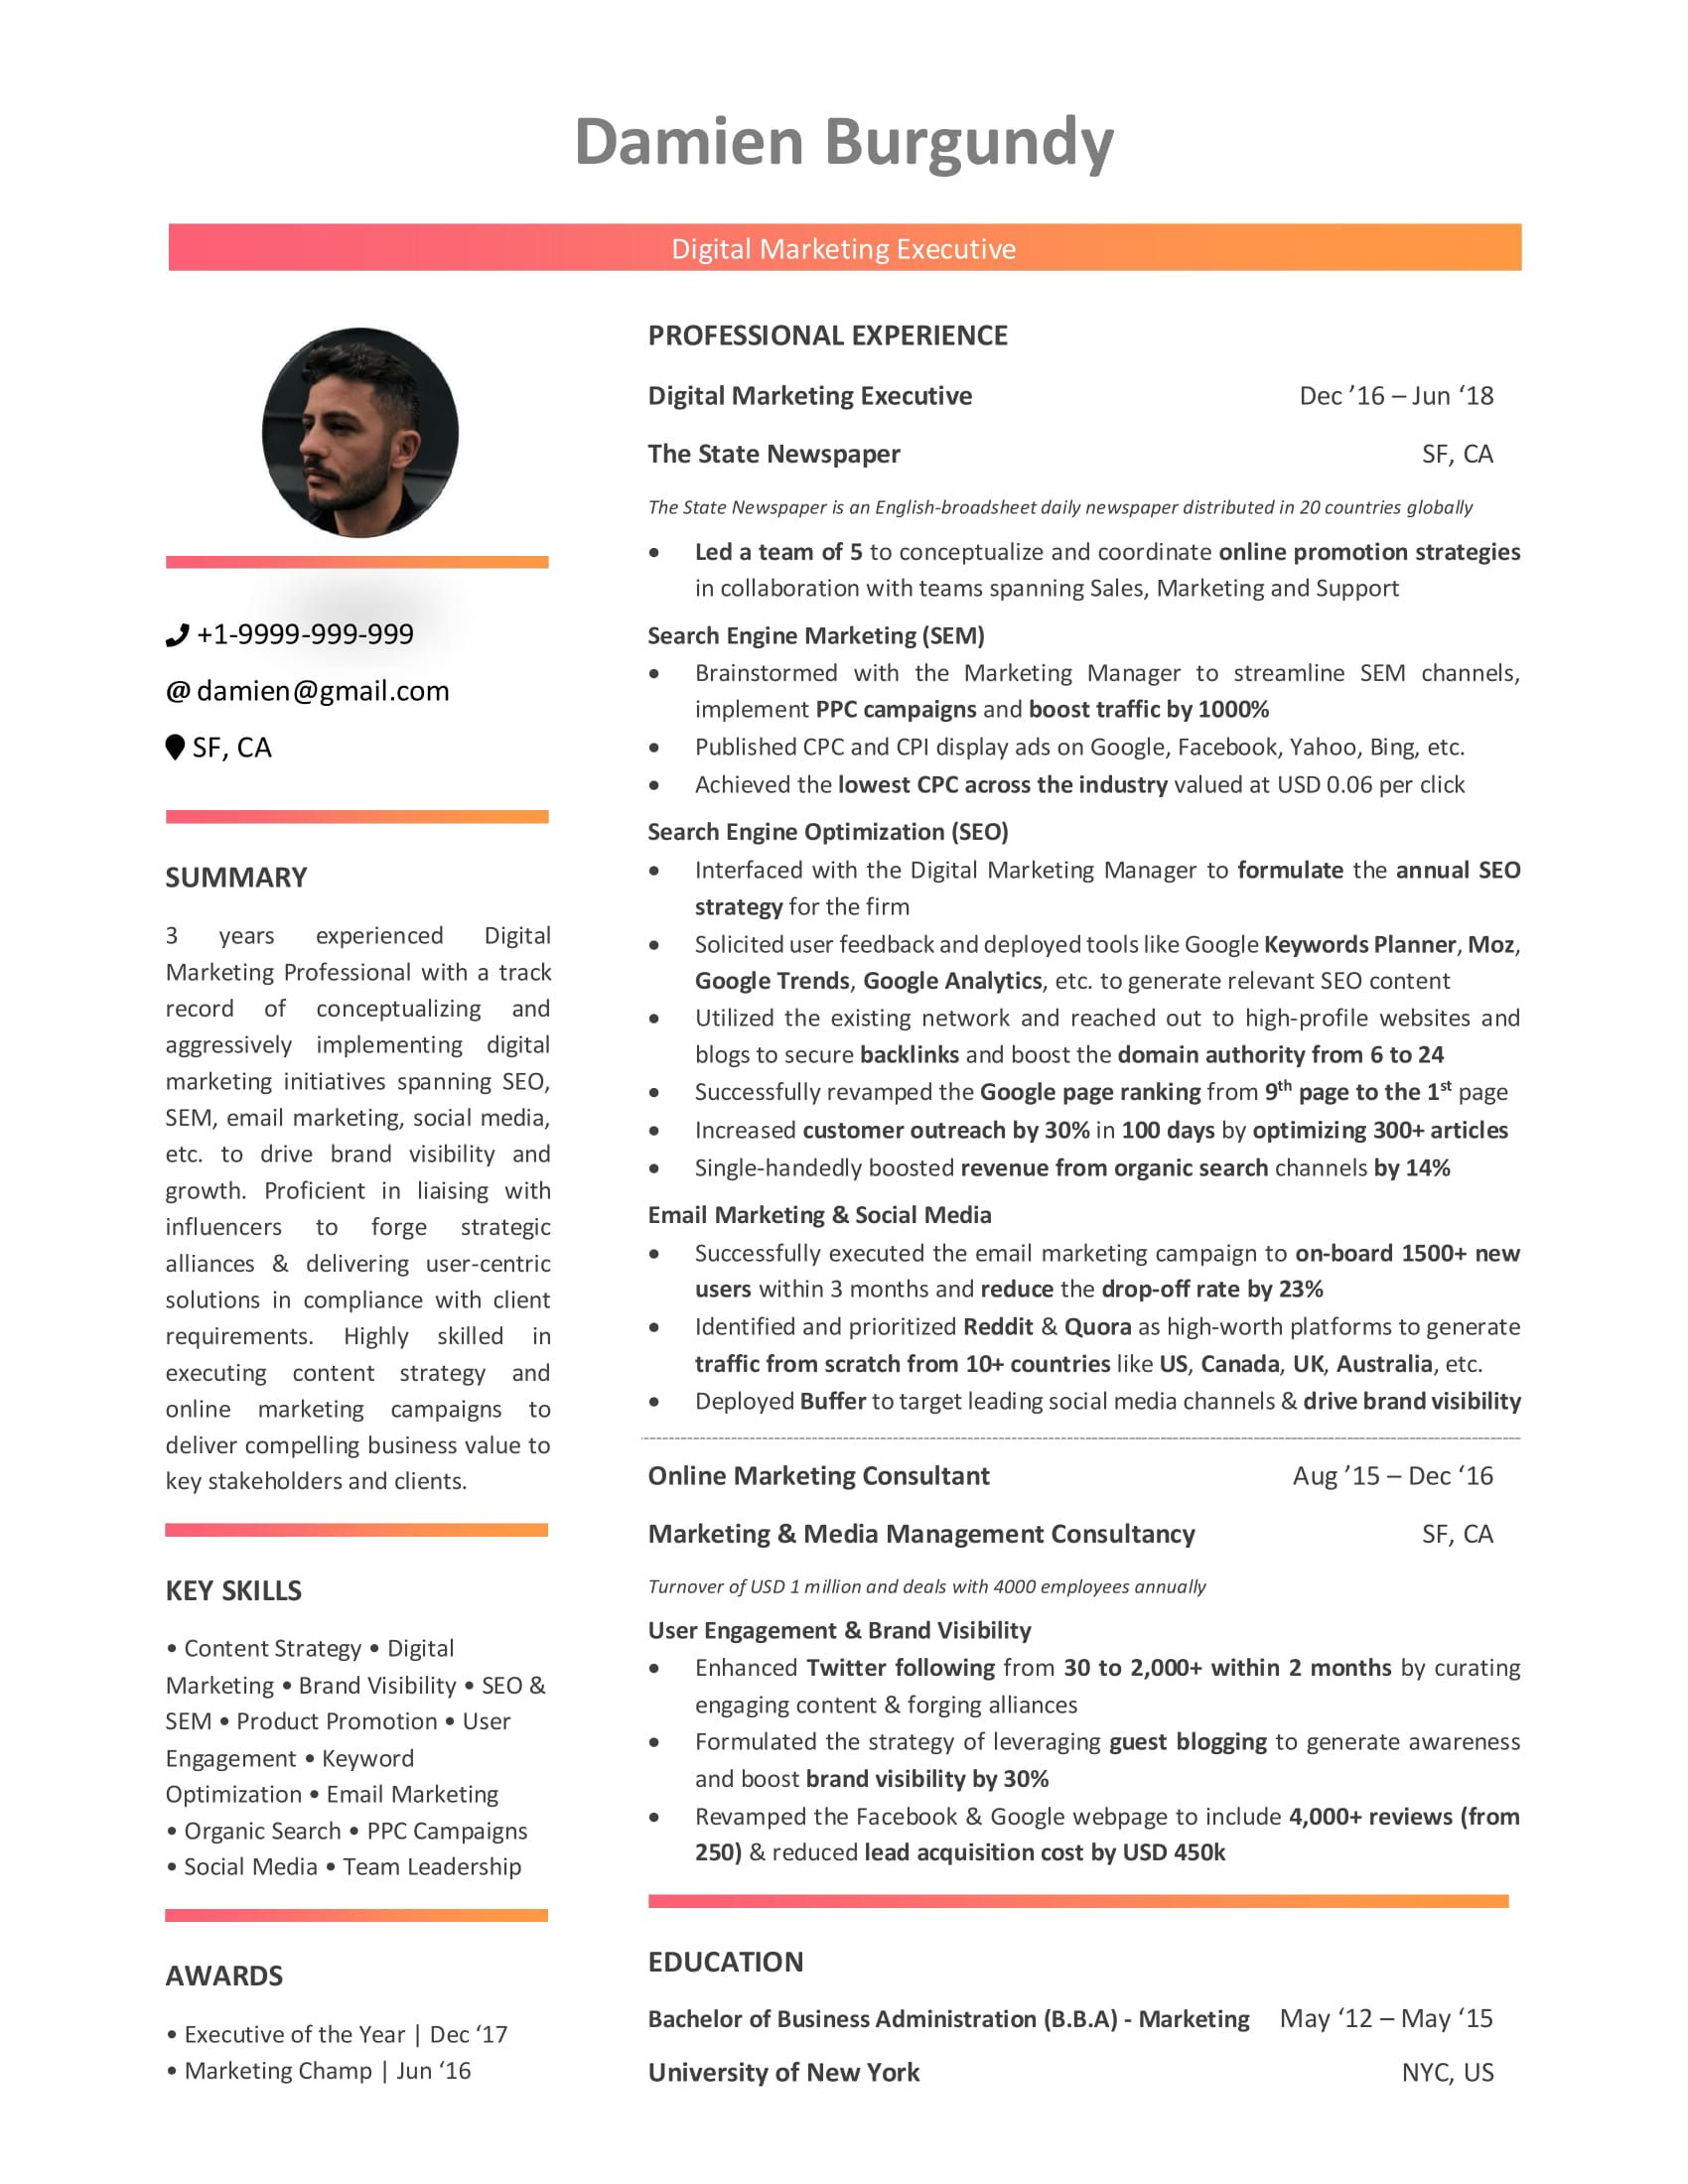 digital marketing resume guide with samples and examples internet current templates apple Resume Internet Marketing Resume